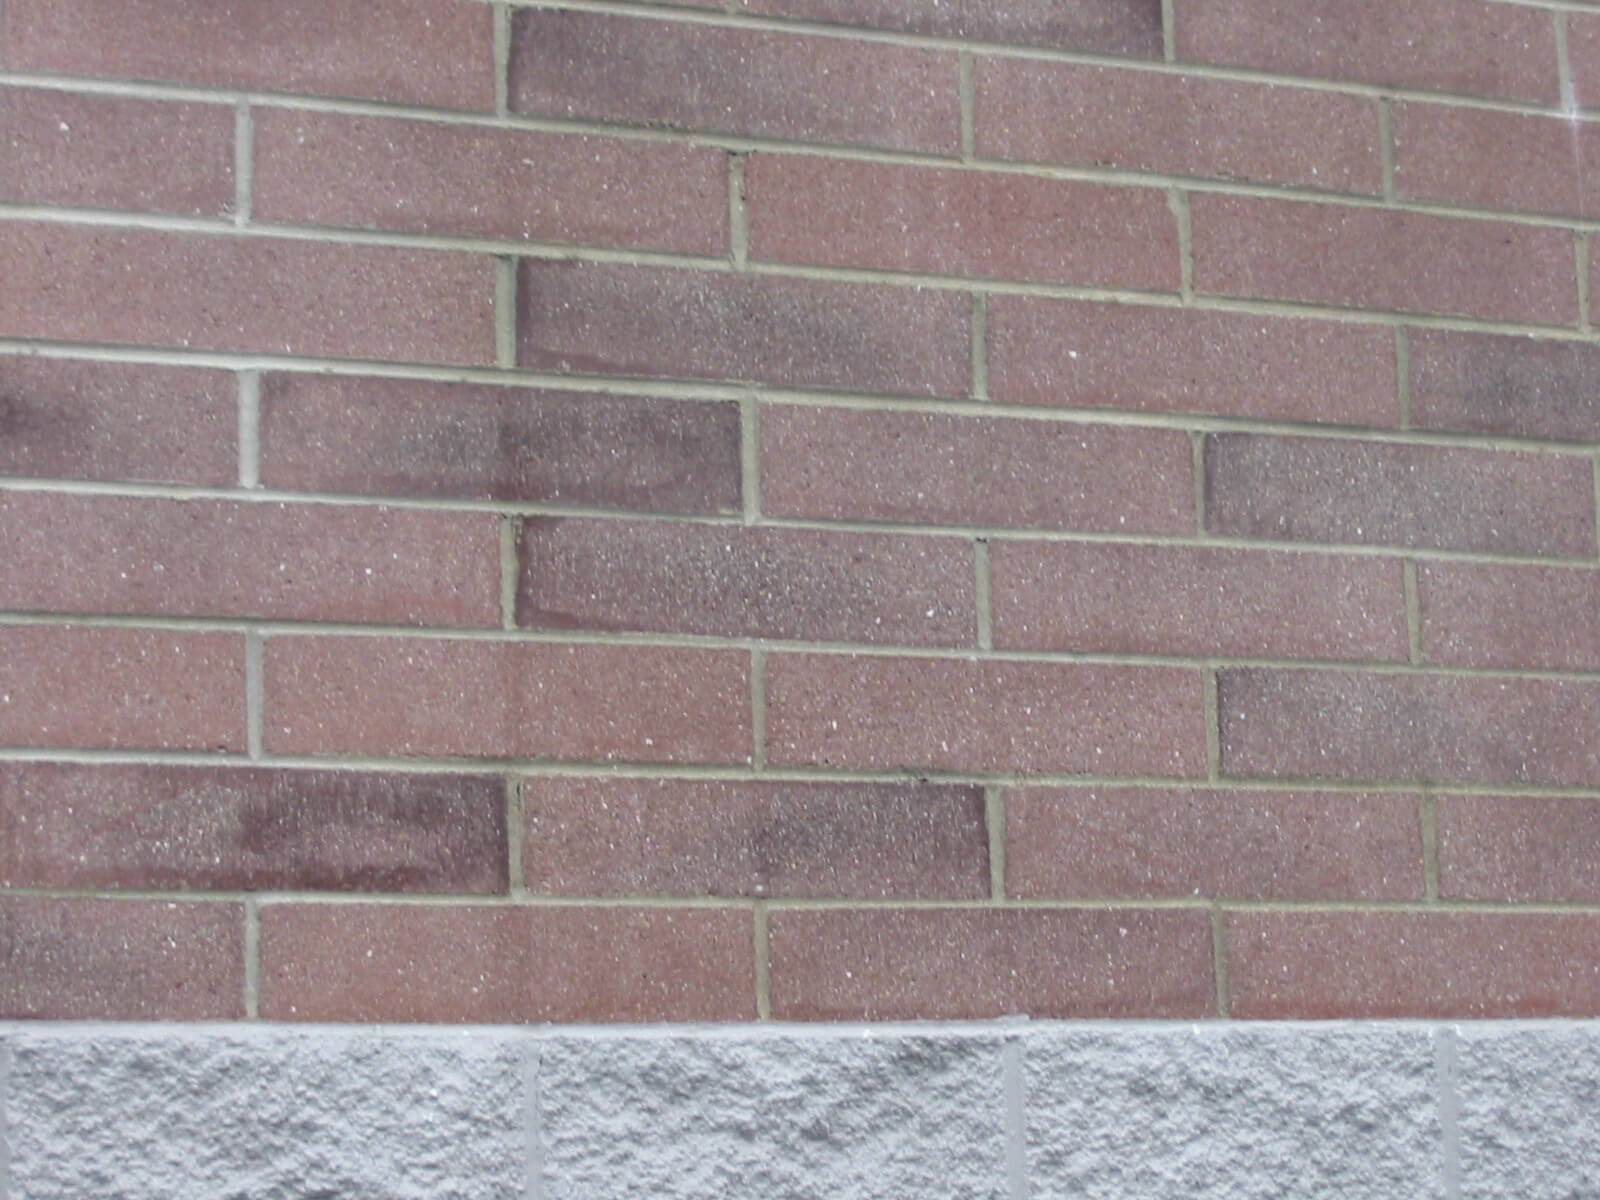 Excess admixture in mortar - Concrete Brick